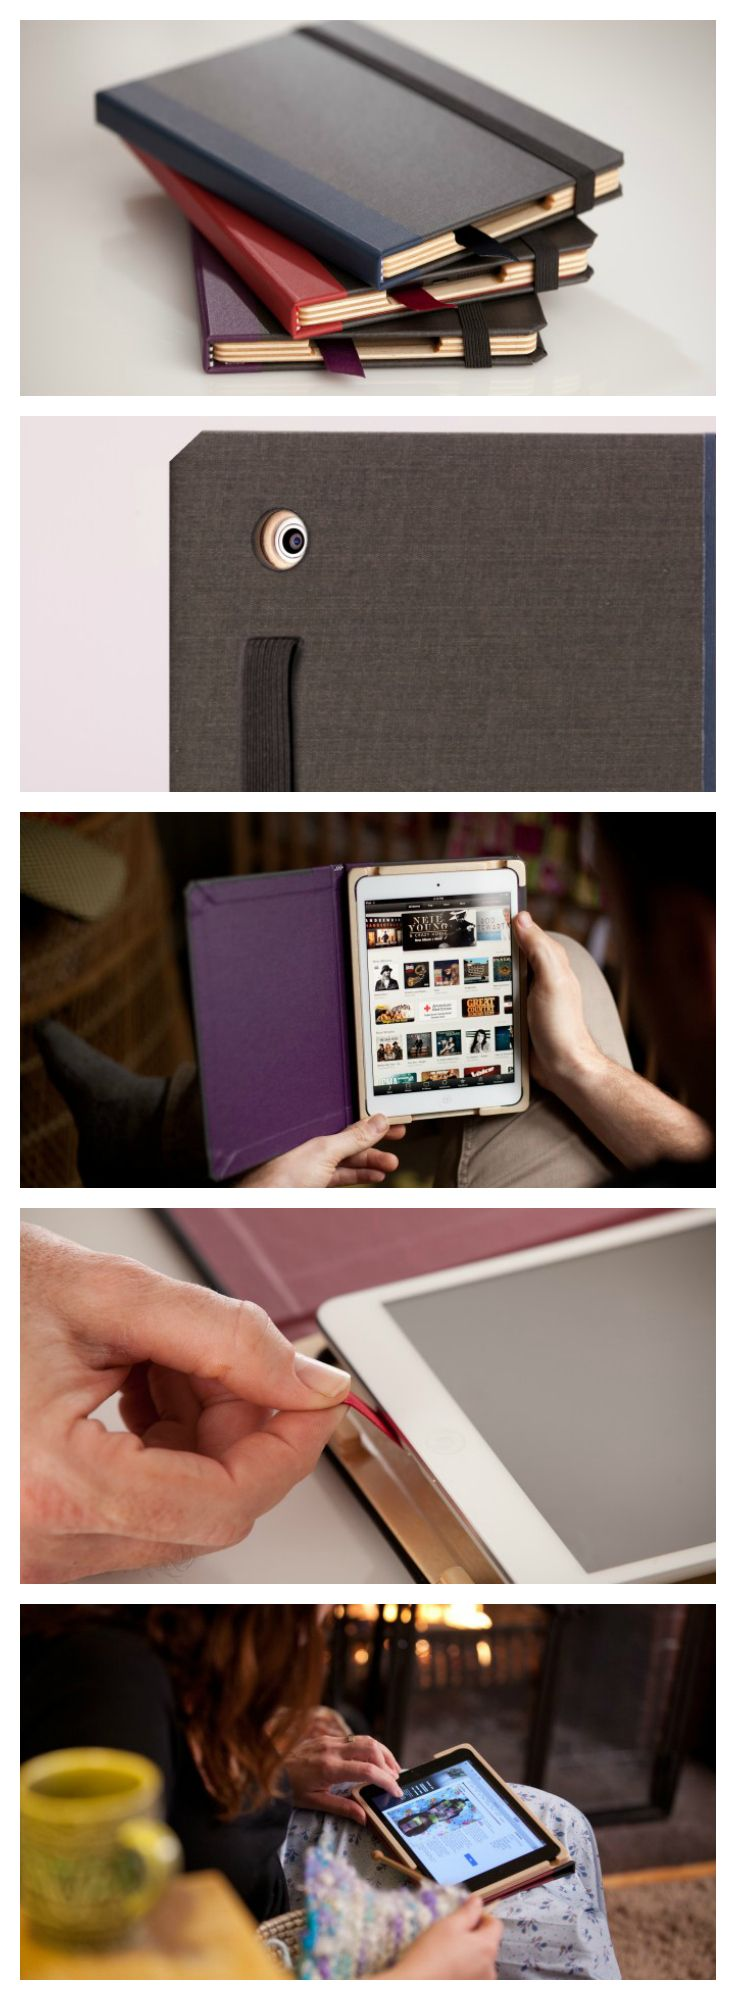 "Graduate Series iPad Mini Case. A handmade two-tone bindery cloth-covered case that protects and disguises your iPad mini with artistic style  FREE domestic shipping with any additional PQ case or accessory, like The Nest  ""...the tome-like bindings might actually fool some into thinking this is a real book and not a highly valuable piece of consumer electronics"" - Charlie S., Wired.com"